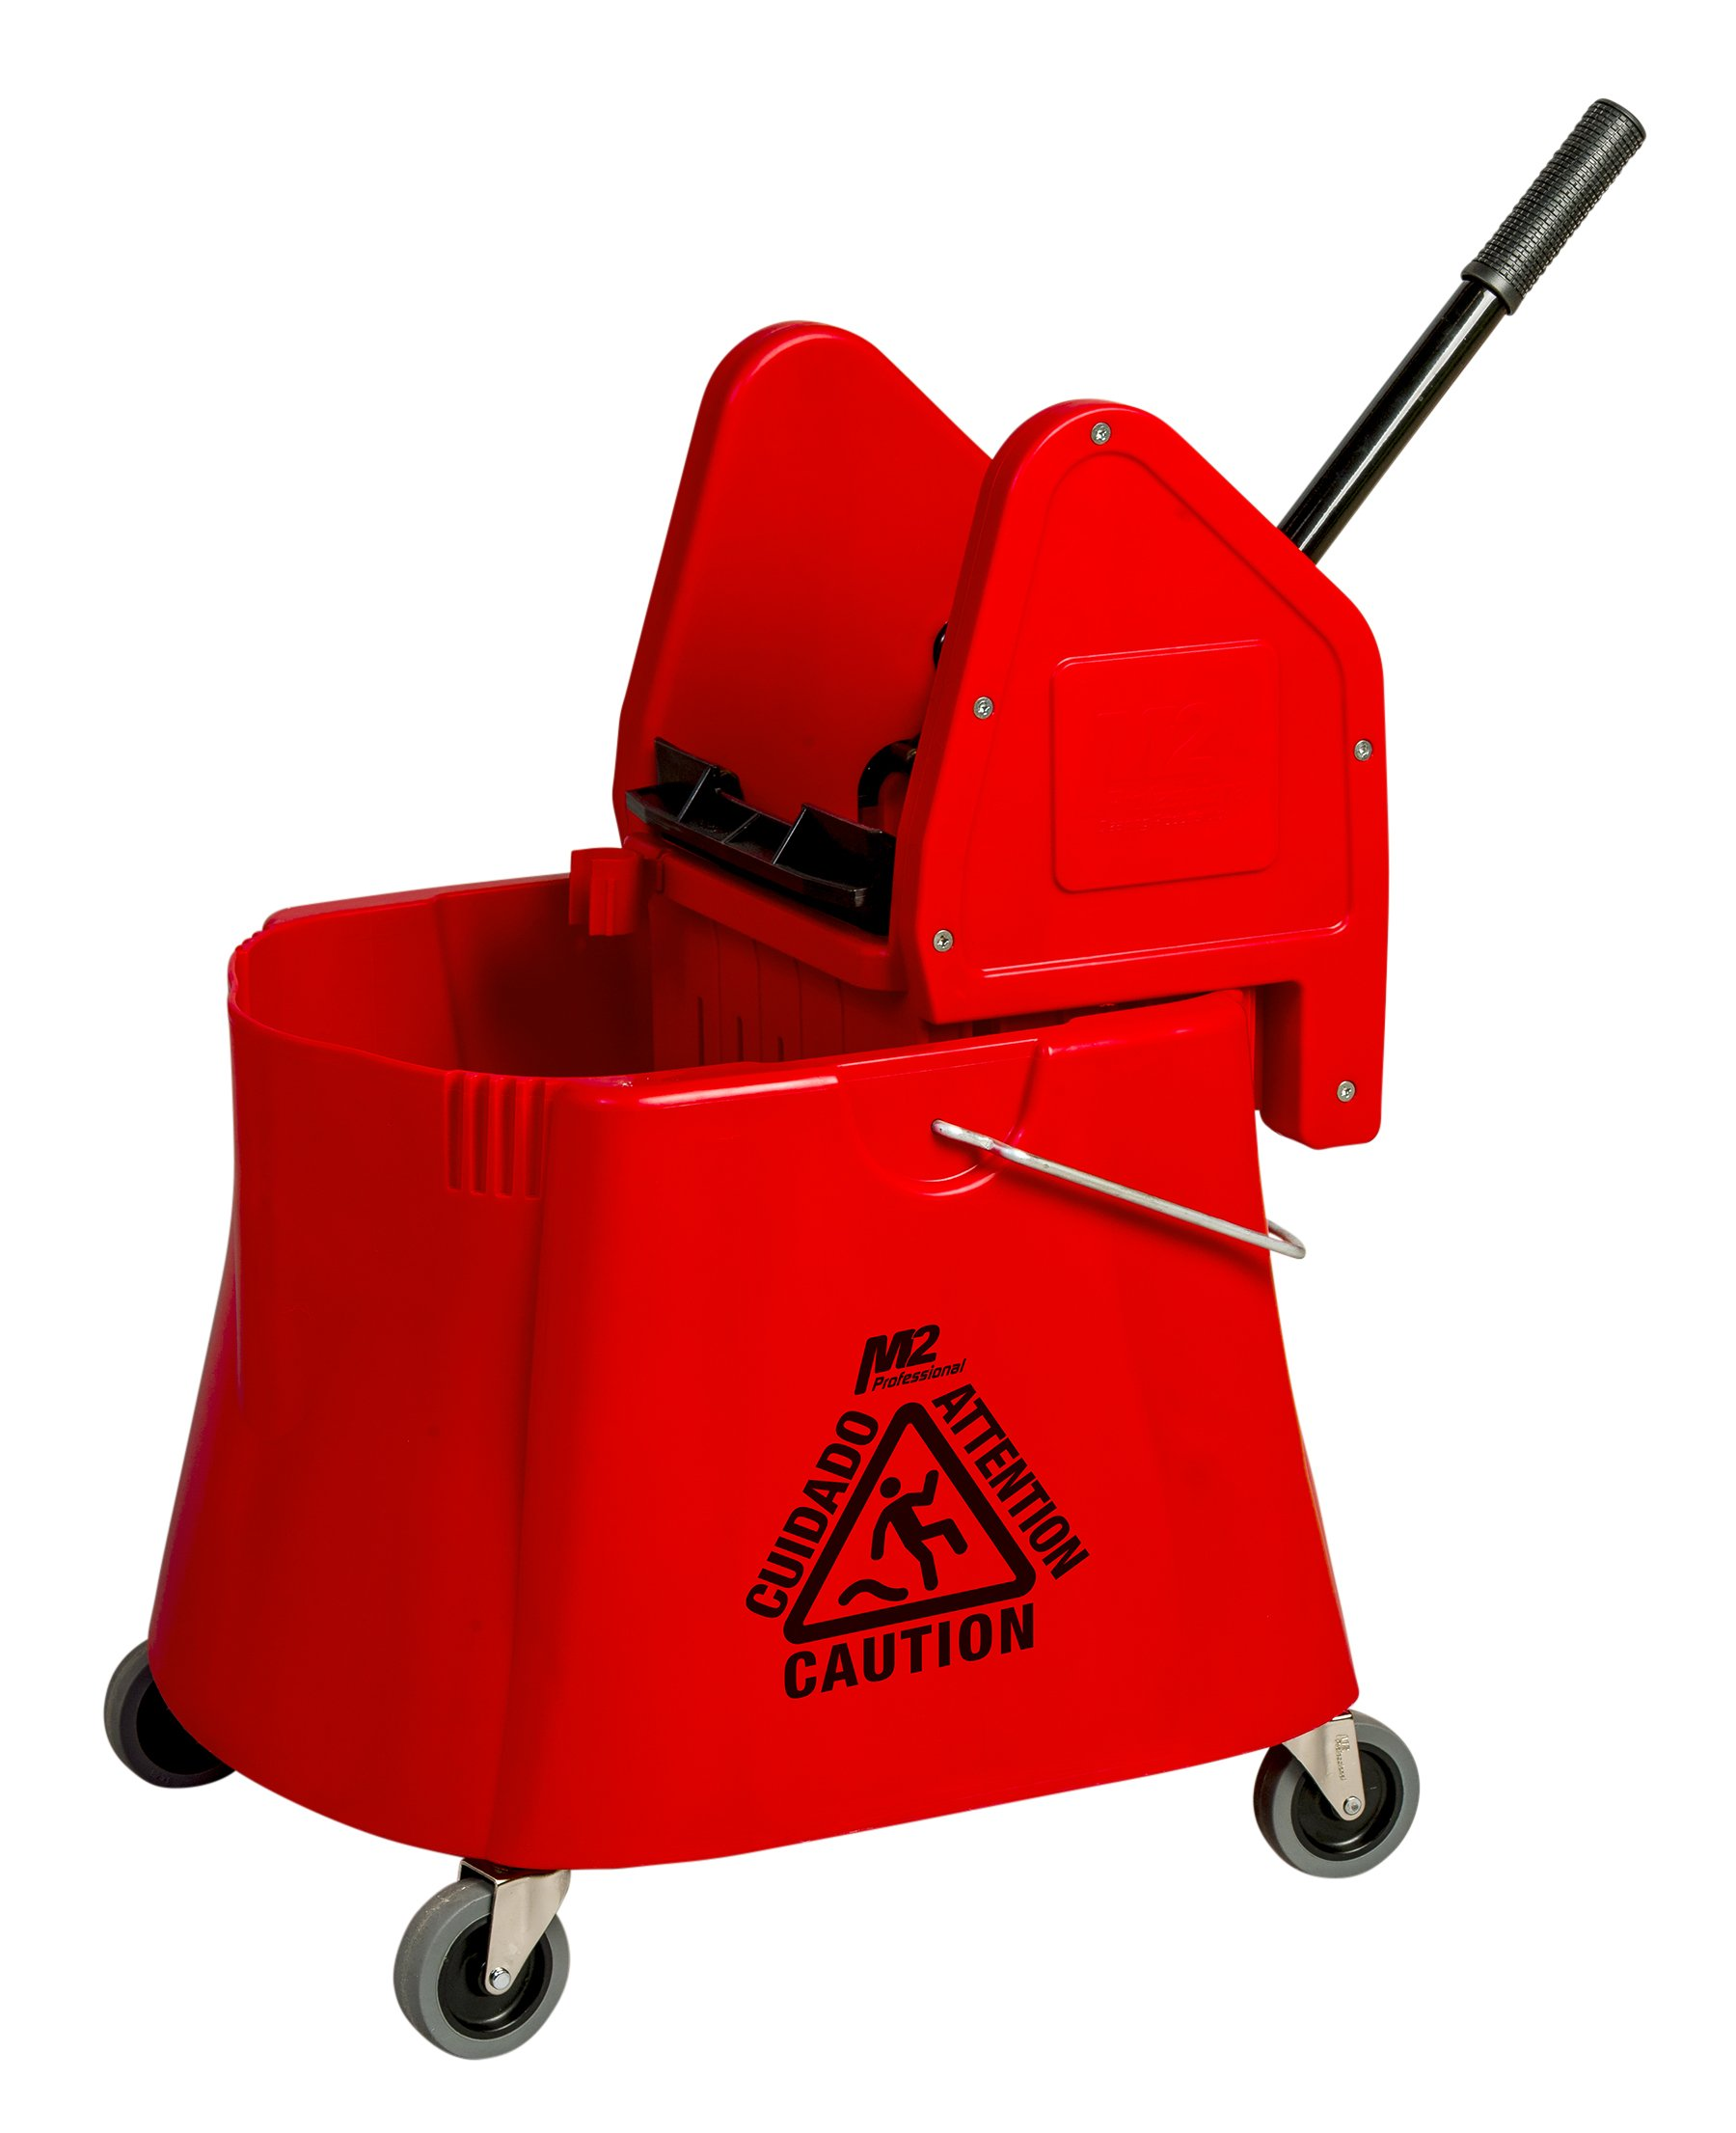 M2 Professional 40 Qt / 30 L Elephant Foot Mop Bucket with Down Press Wringer with Wheels - Red